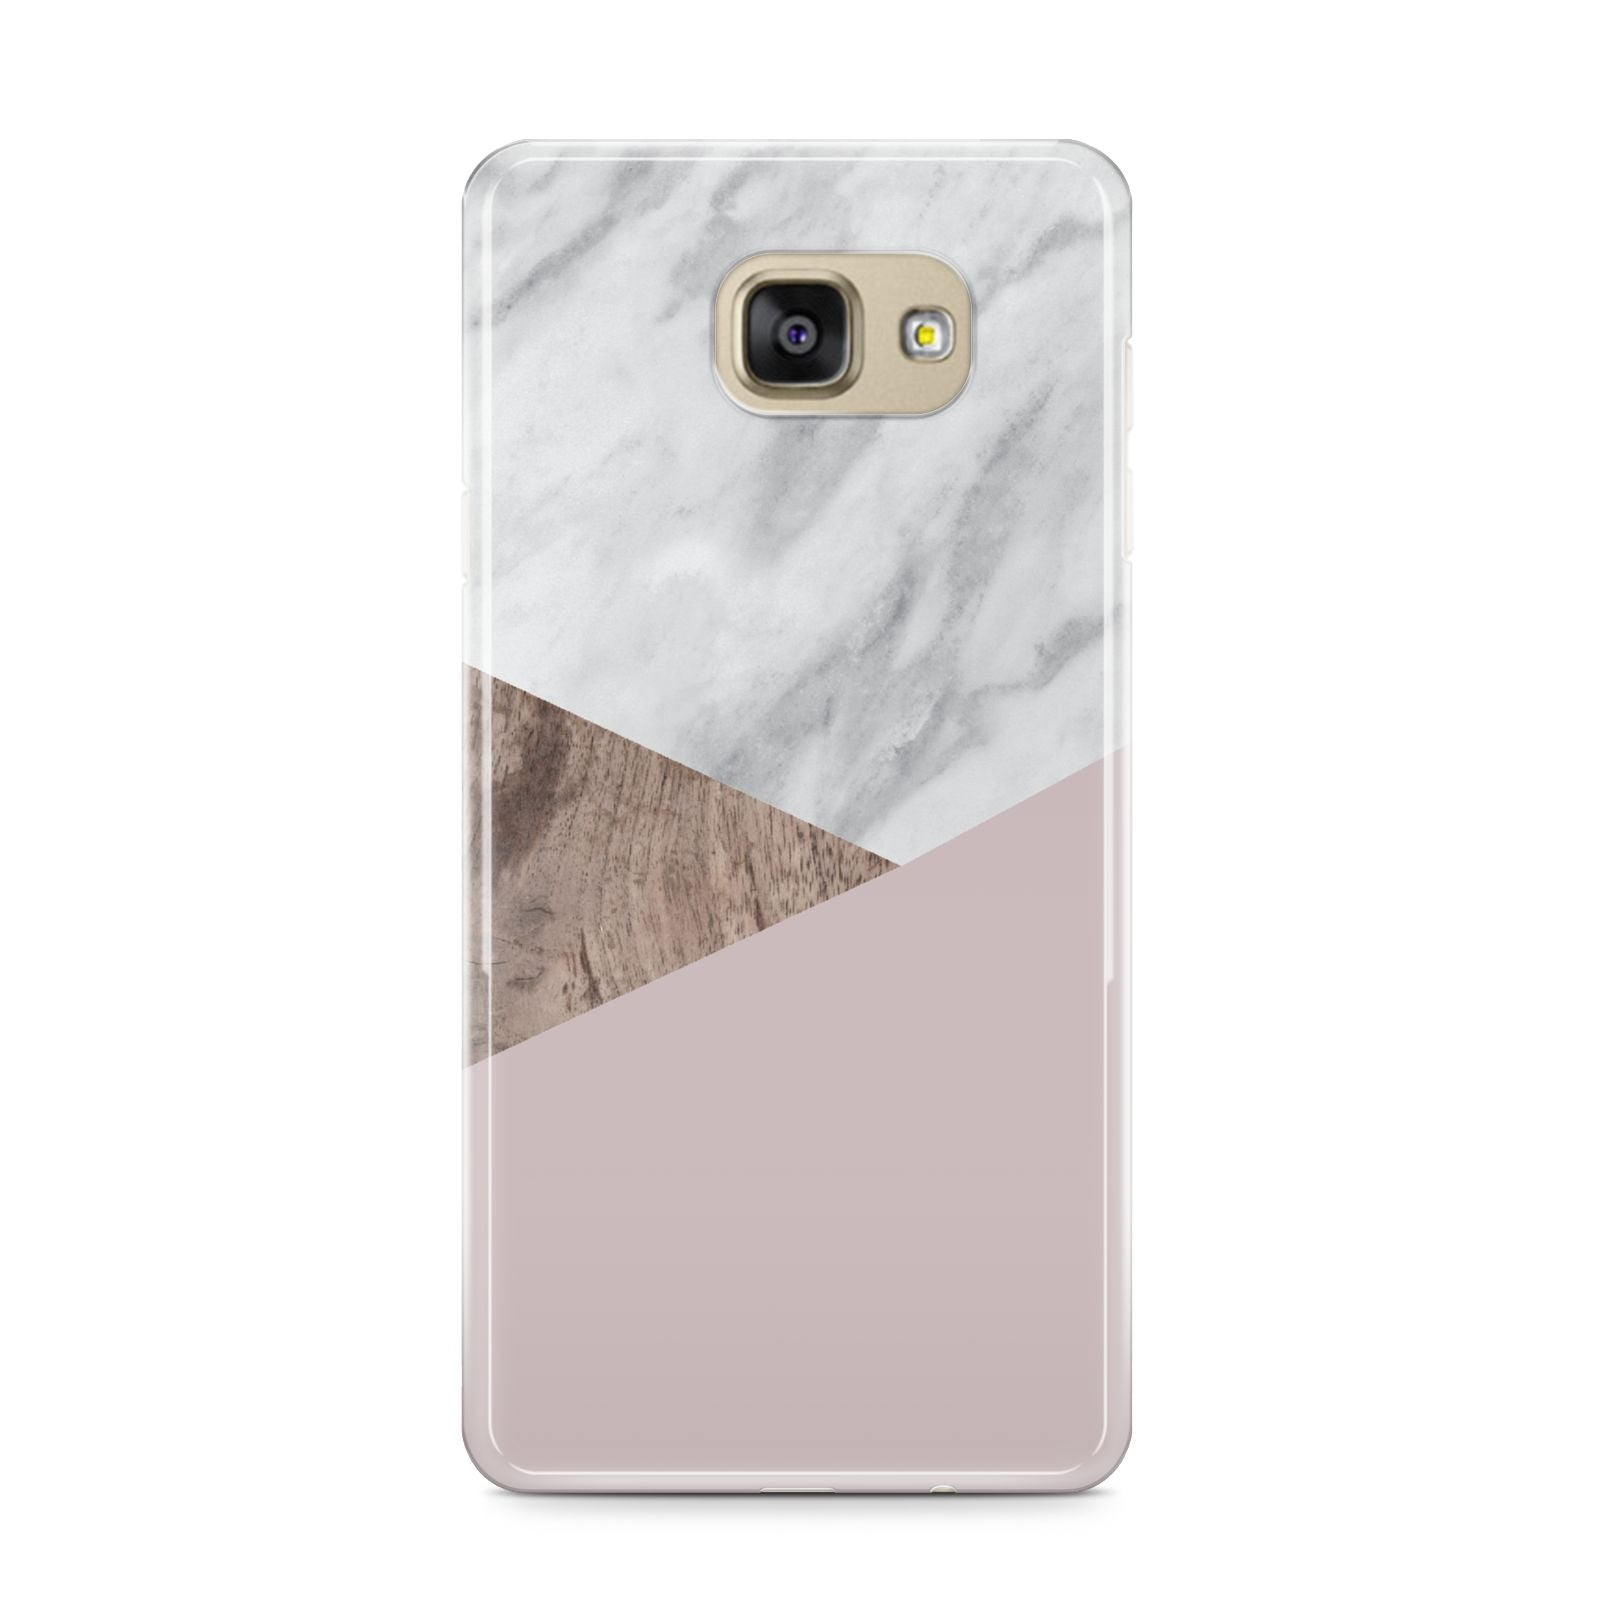 Marble Wood Geometric 3 Samsung Galaxy A9 2016 Case on gold phone